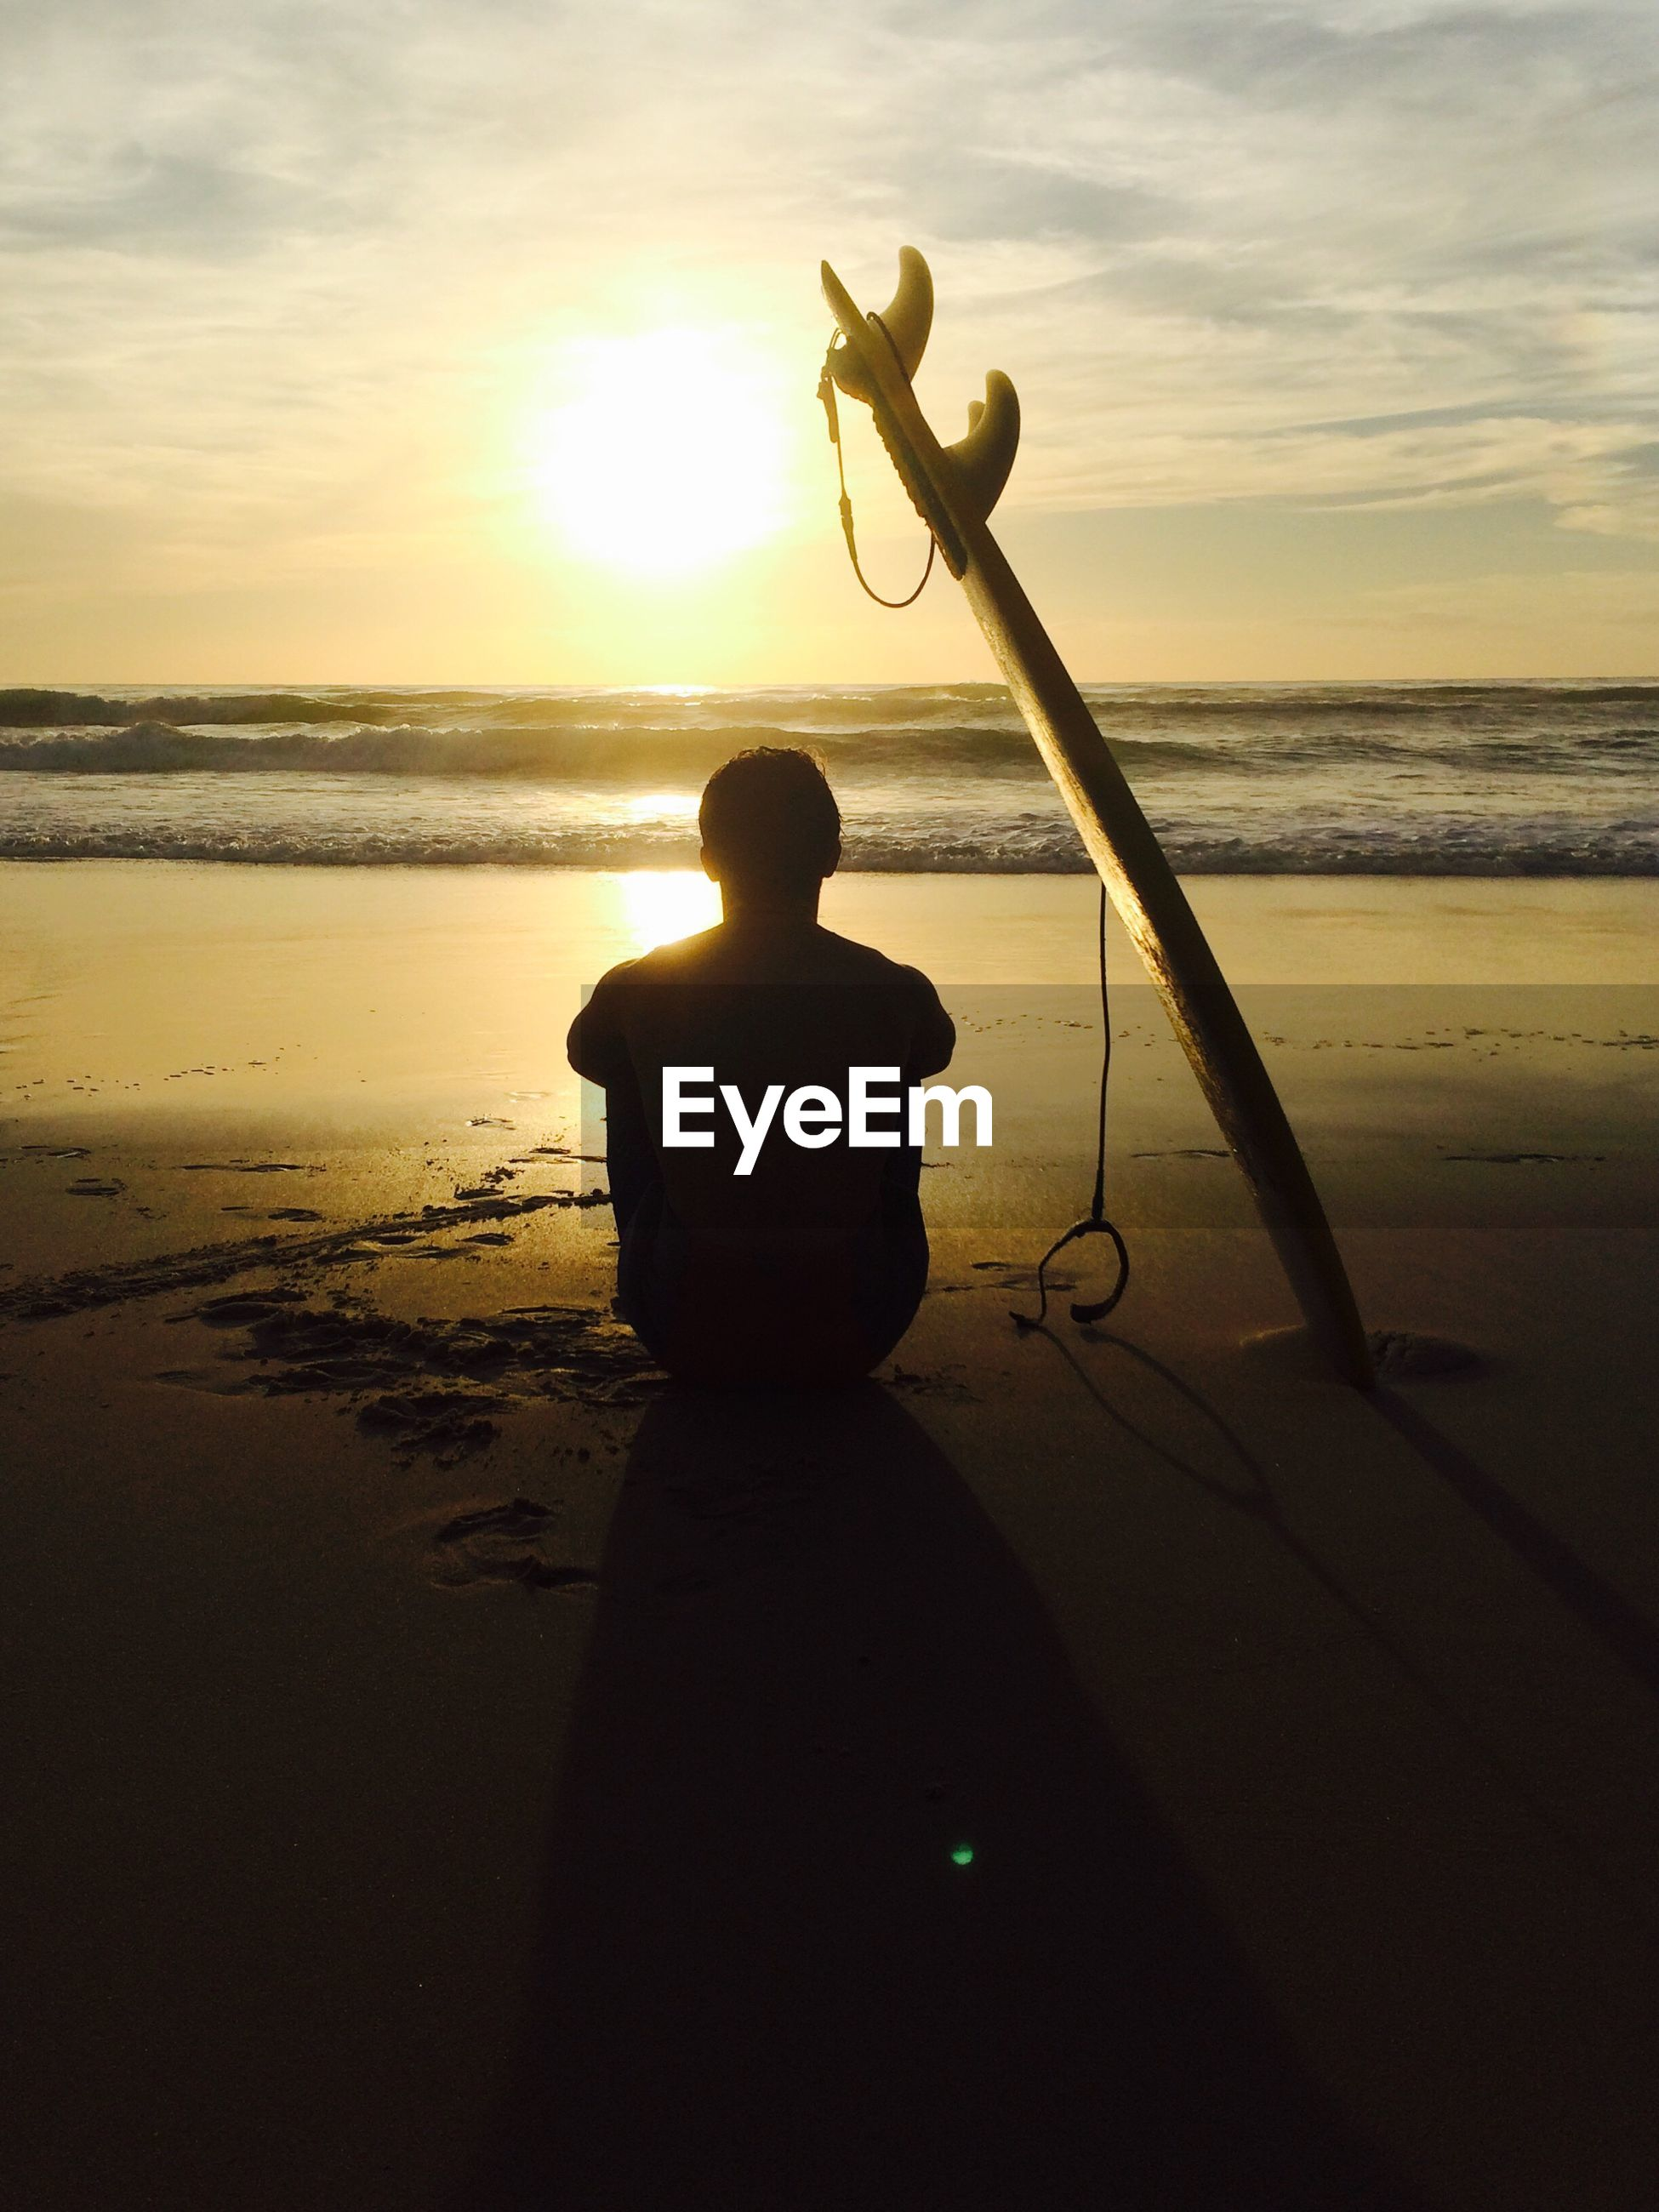 sunset, sea, water, one person, silhouette, nature, horizon over water, real people, beauty in nature, standing, scenics, beach, sky, sun, men, rear view, leisure activity, outdoors, holding, tranquil scene, tranquility, fishing, full length, sand, lifestyles, childhood, fishing pole, day, people